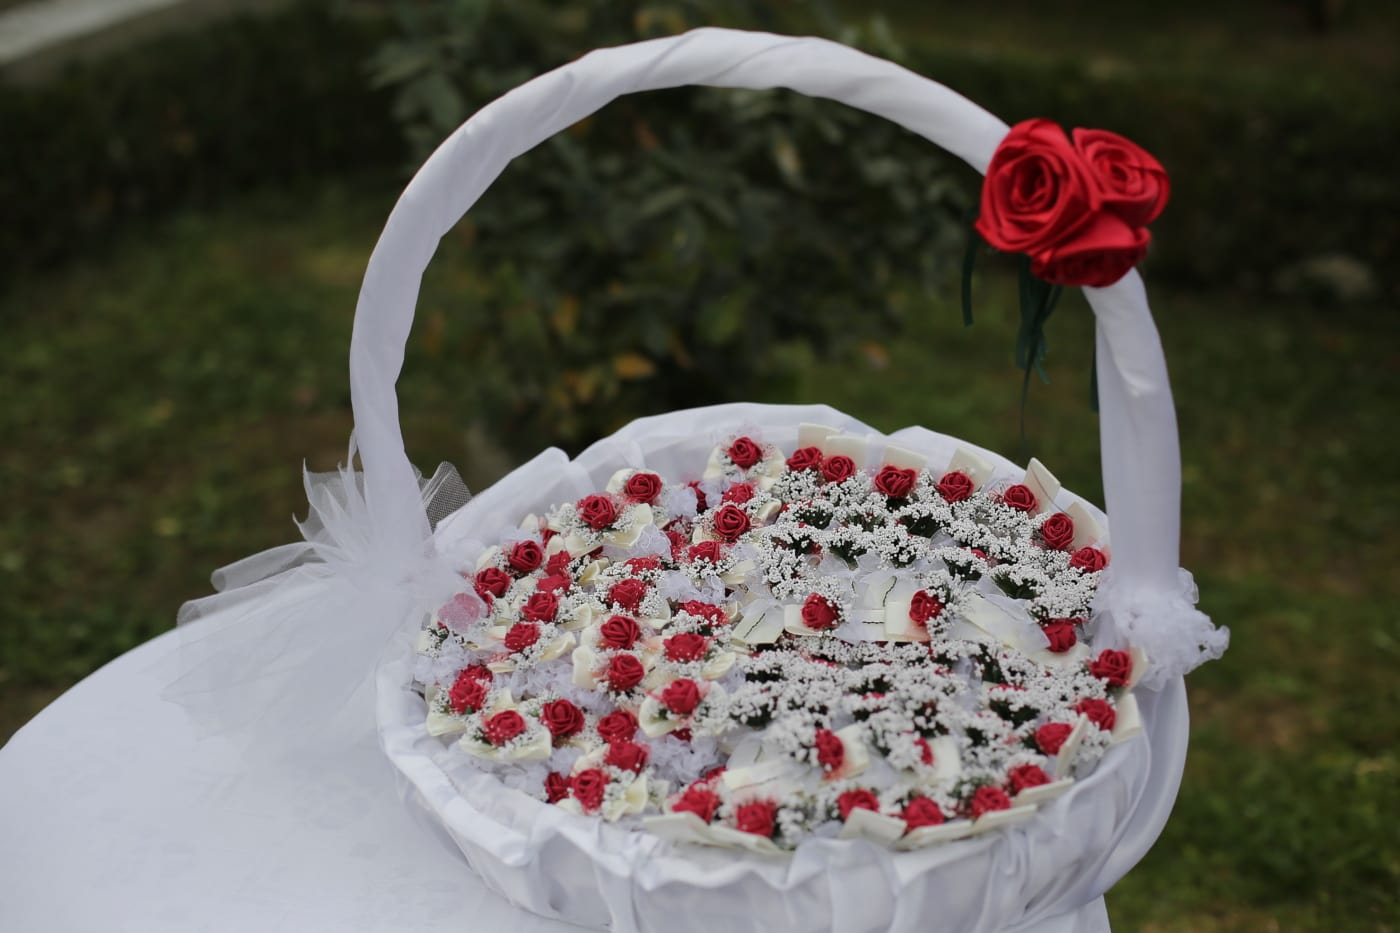 wicker basket, silk, roses, miniature, flowers, flower, romance, rose, ceremony, decoration